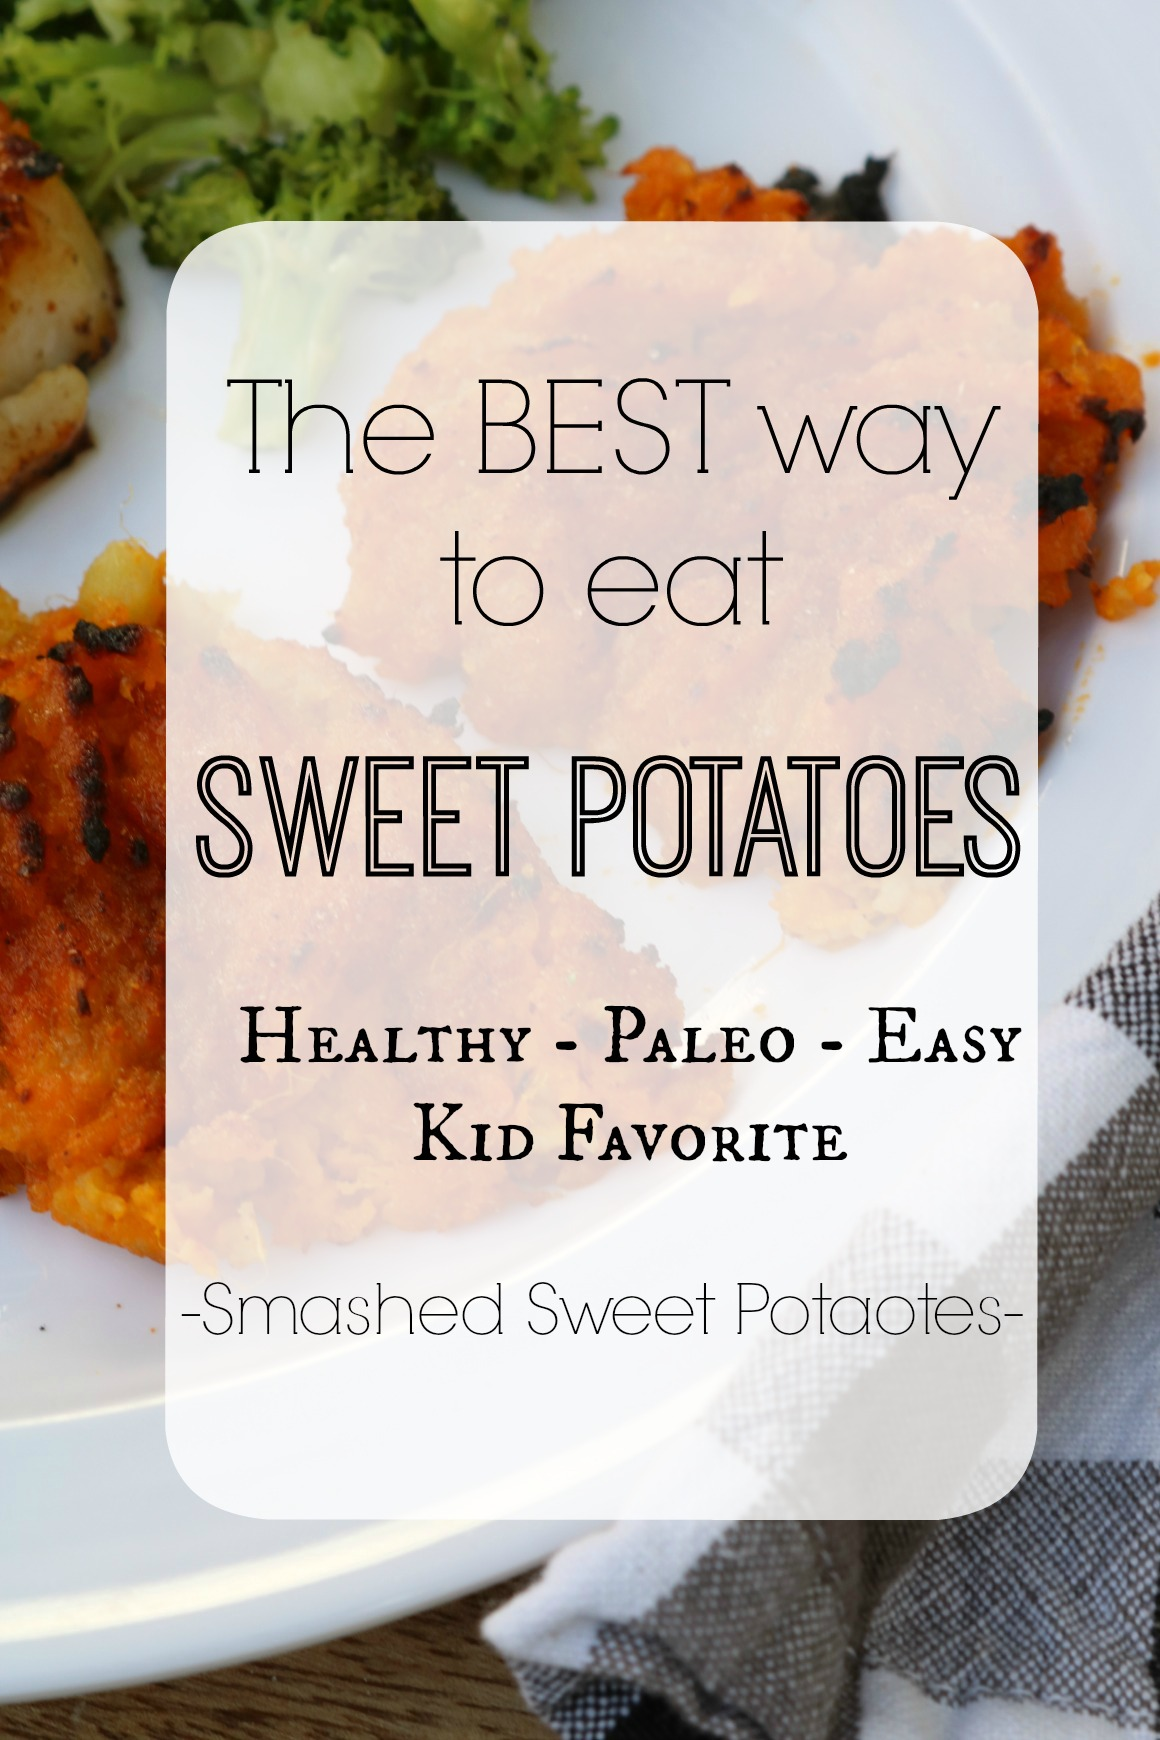 Smashed Sweet Potatoes- The best way to cook Sweet Potatoes